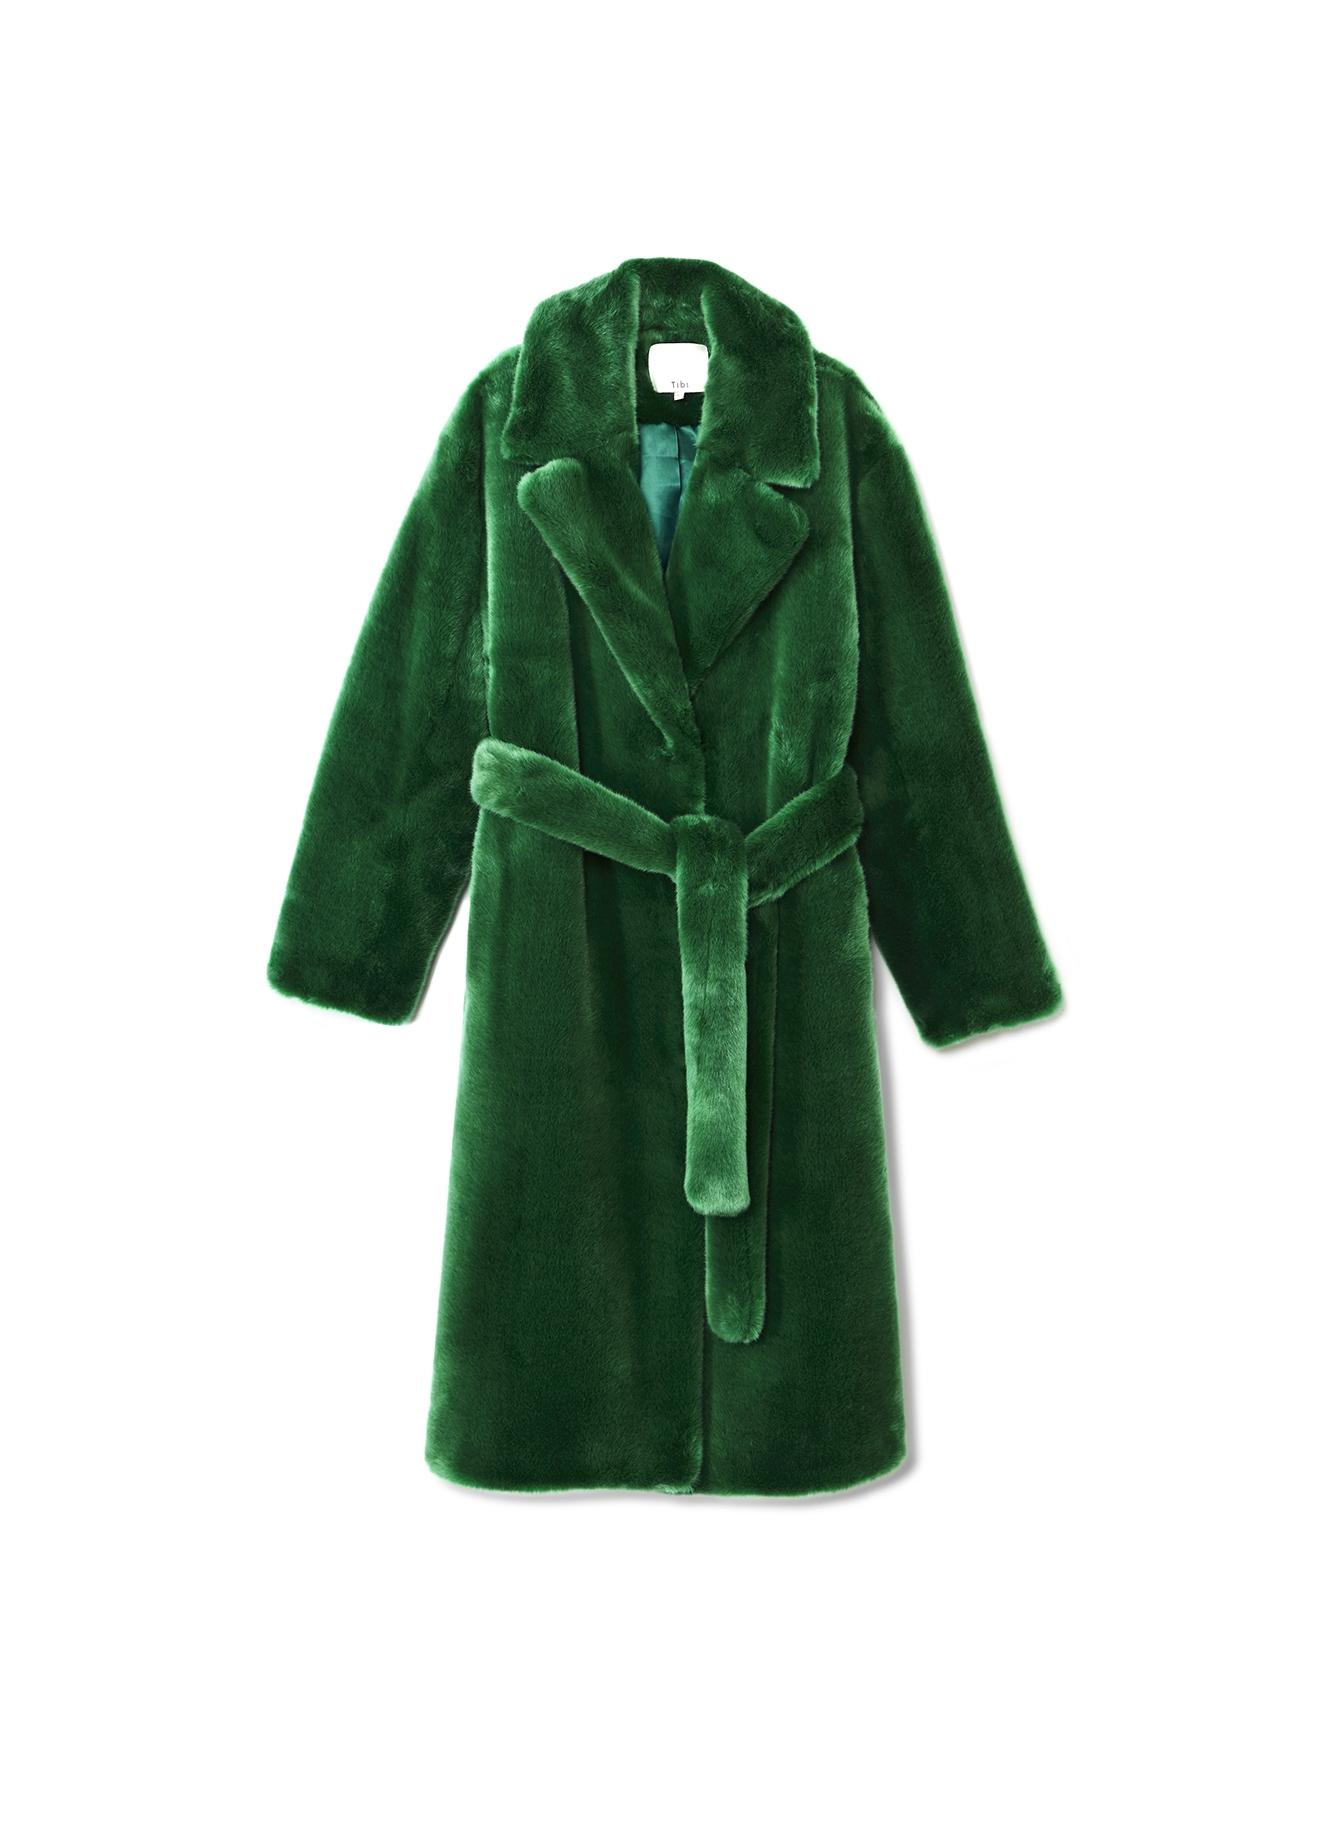 f355aab86771 Tibi Luxe Oversized Faux Fur Coat in Green - Save 16% - Lyst